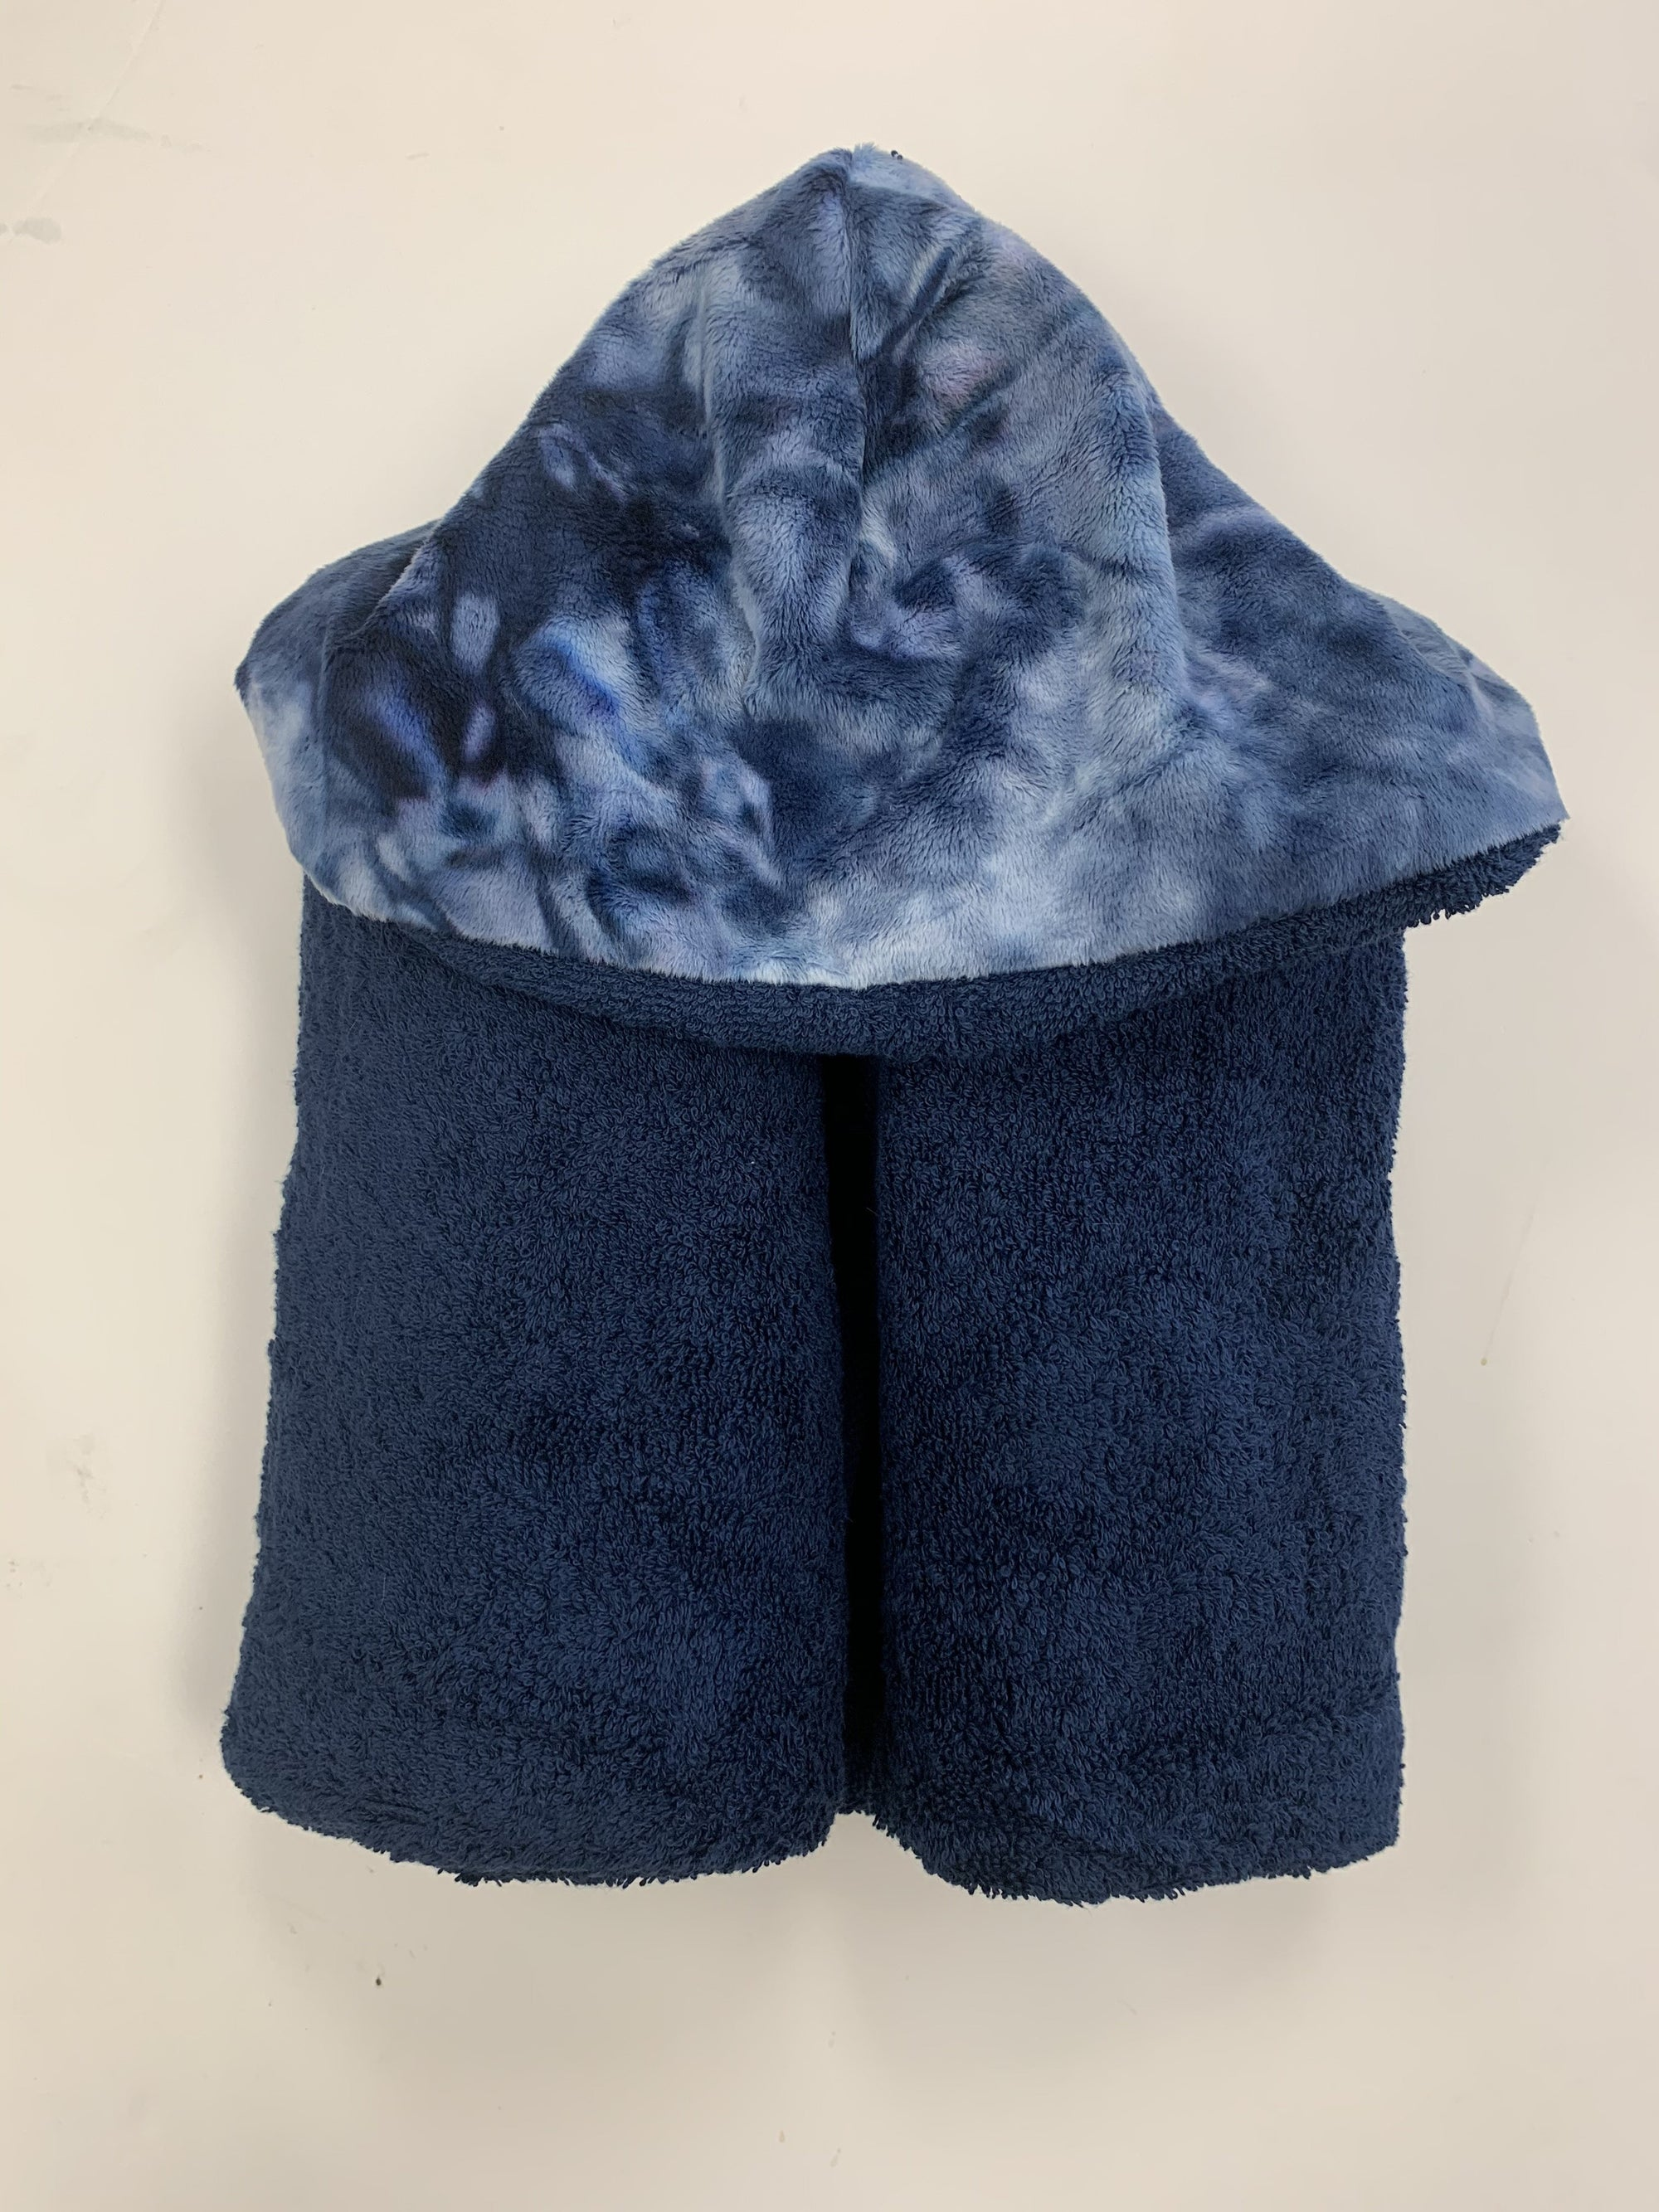 Zandino  Oversized Hooded Towel Collection